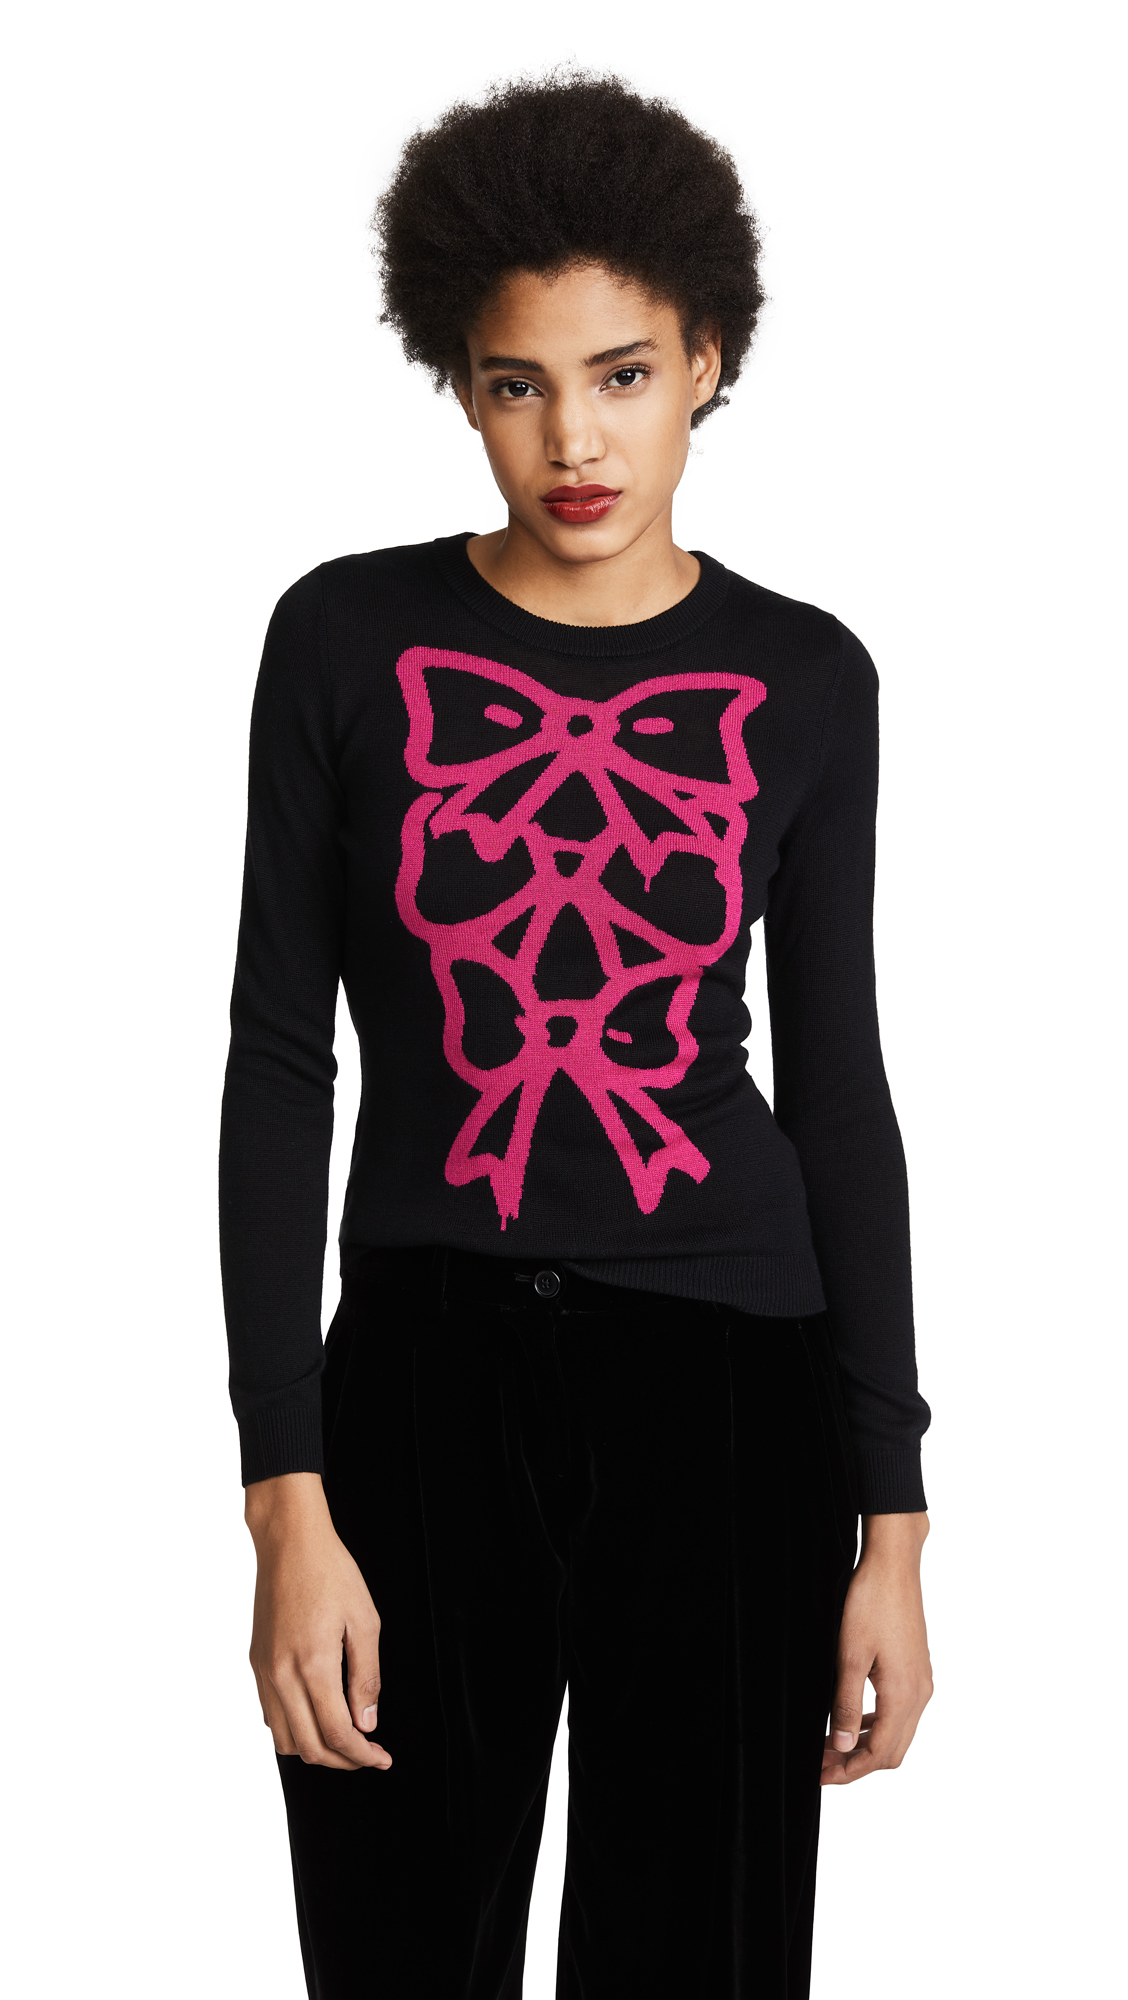 Boutique Moschino Bow Print Sweater - Black